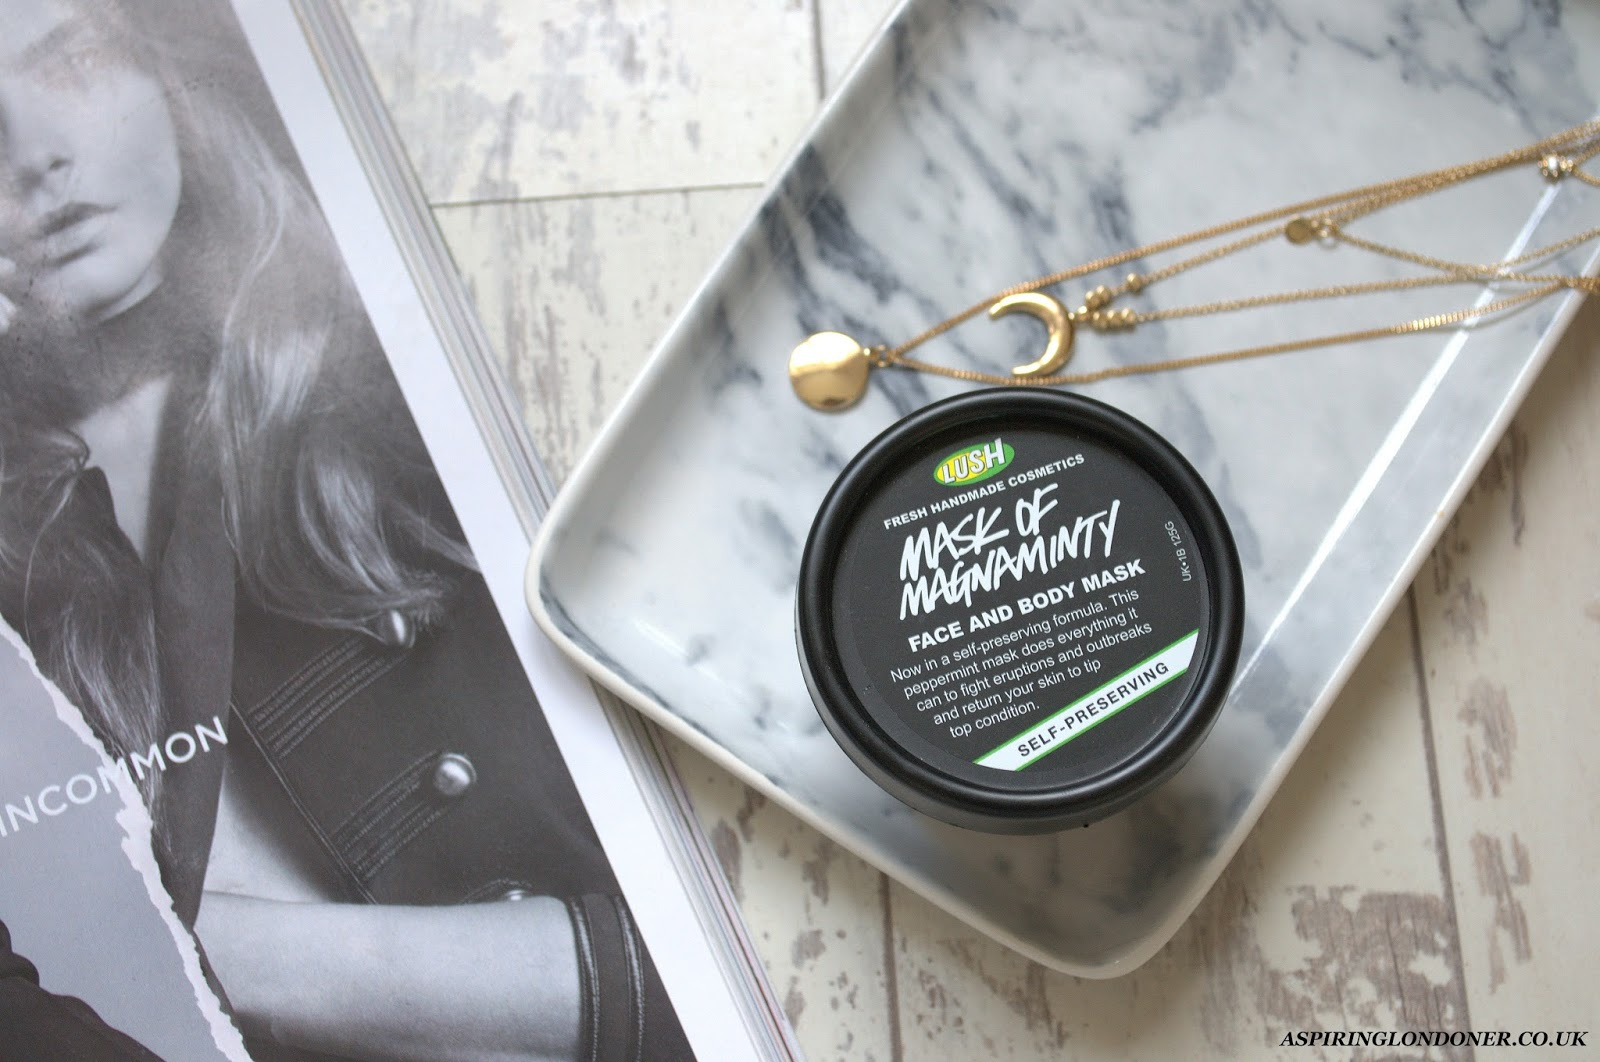 Lush Mask of Magnaminty Face Mask Review - Aspiring Londoner